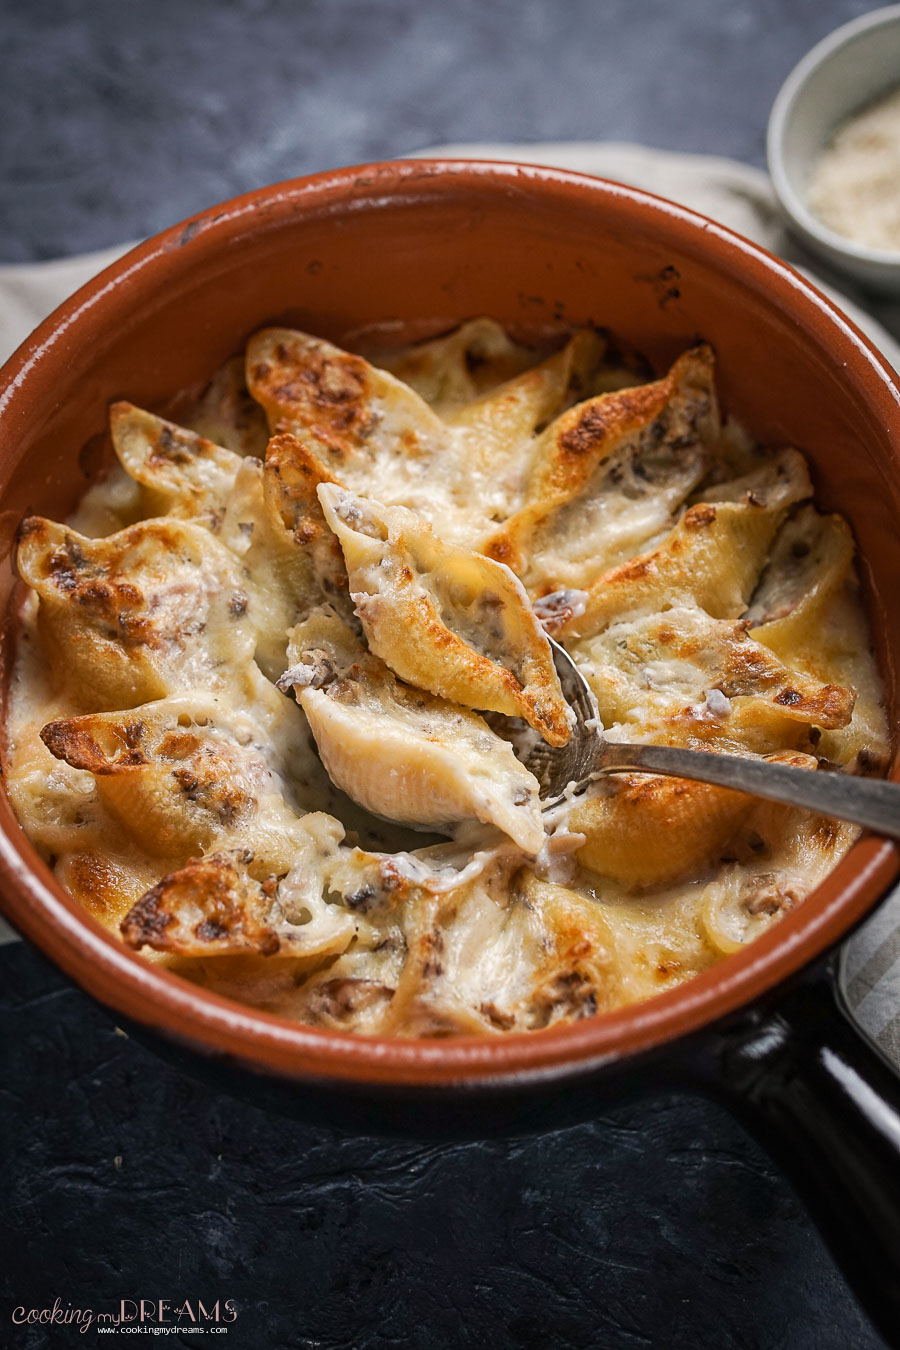 A spoon taking two stuffed shells from the baking dish to serve